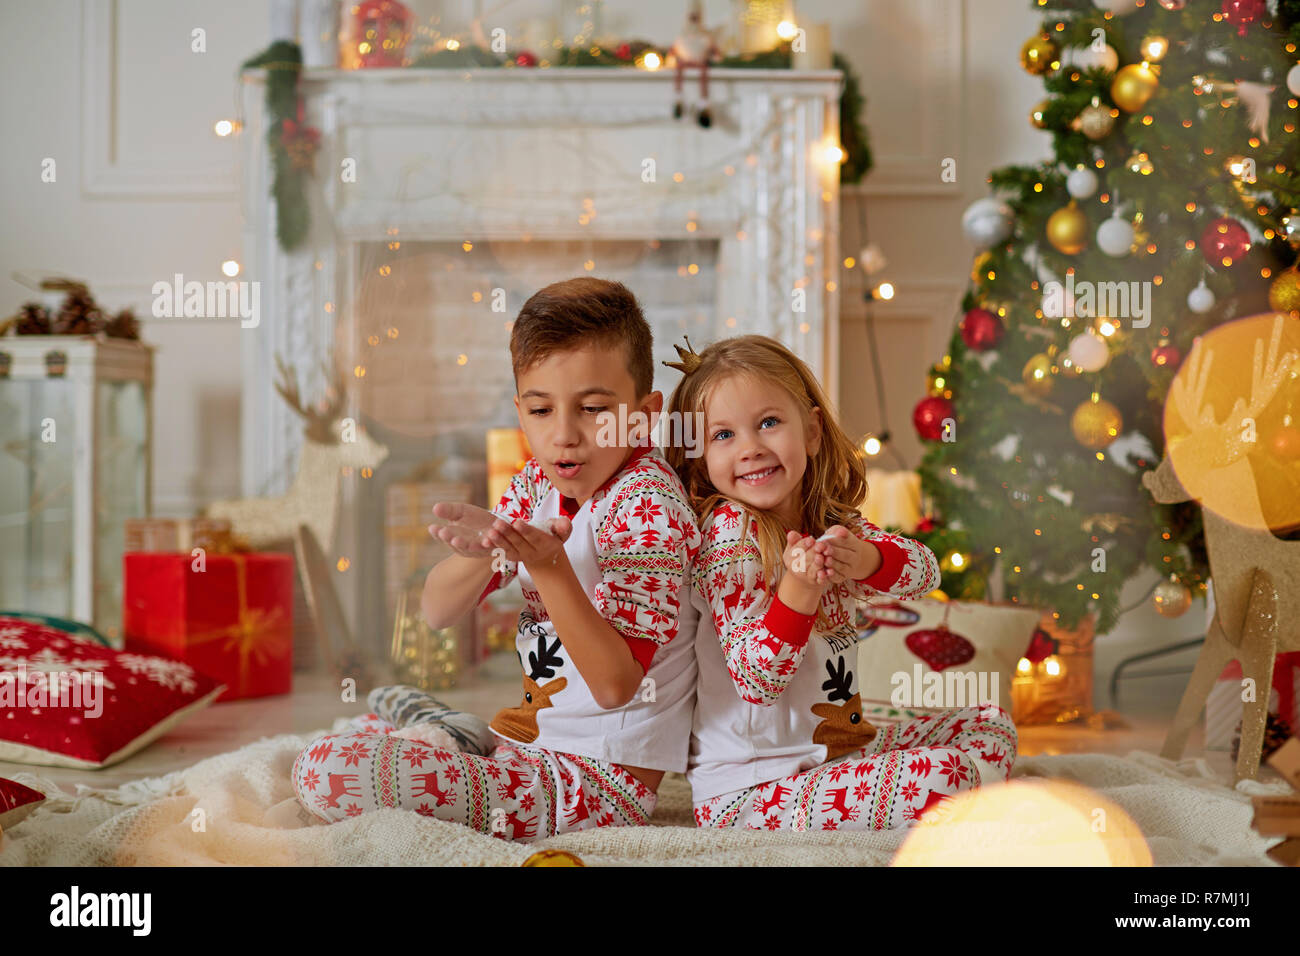 Adorable little girl and boy in Christmas time Stock Photo